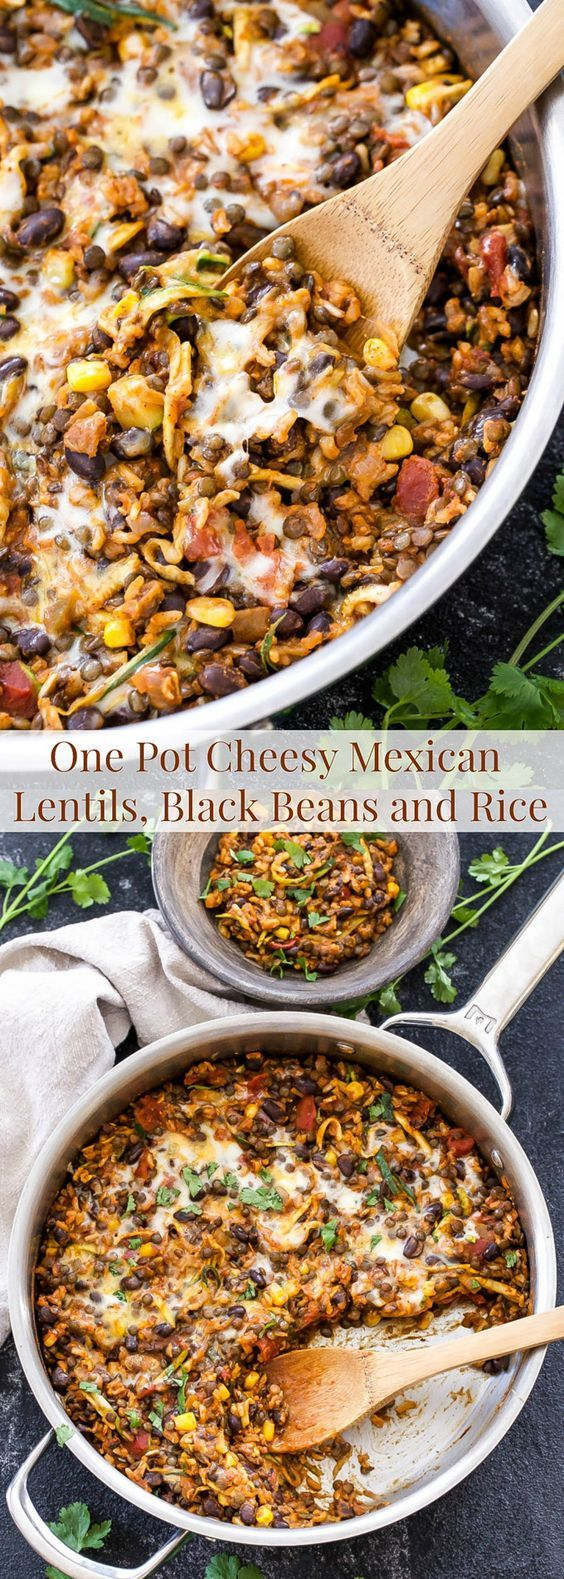 Ingredients 1/2 of a yellow onion, diced 1 clove of garlic minced 1/2 cup uncooked long grain brown rice 1/2 cup uncooked Fre...